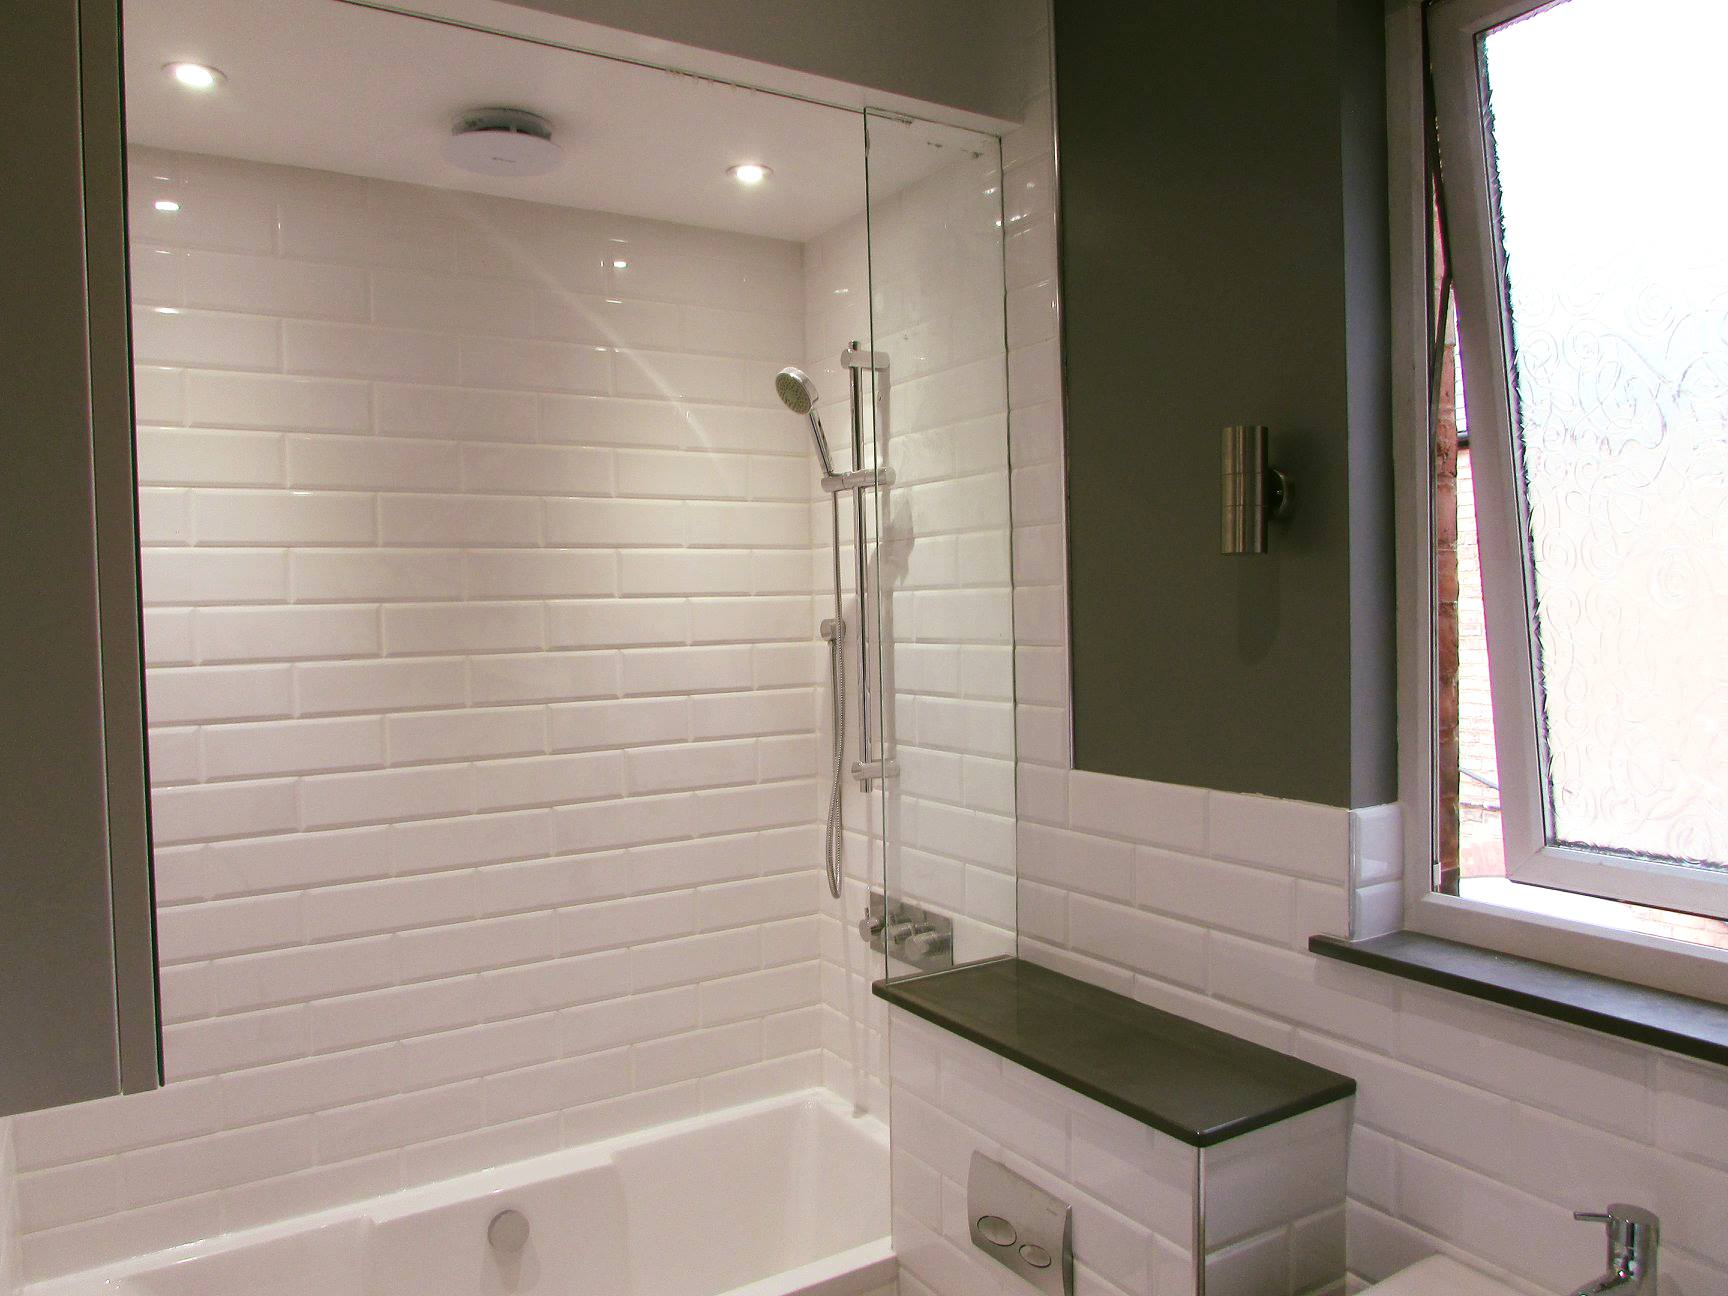 Natural Stone & Tiled Bathroom in Birmingham - Bathrooms